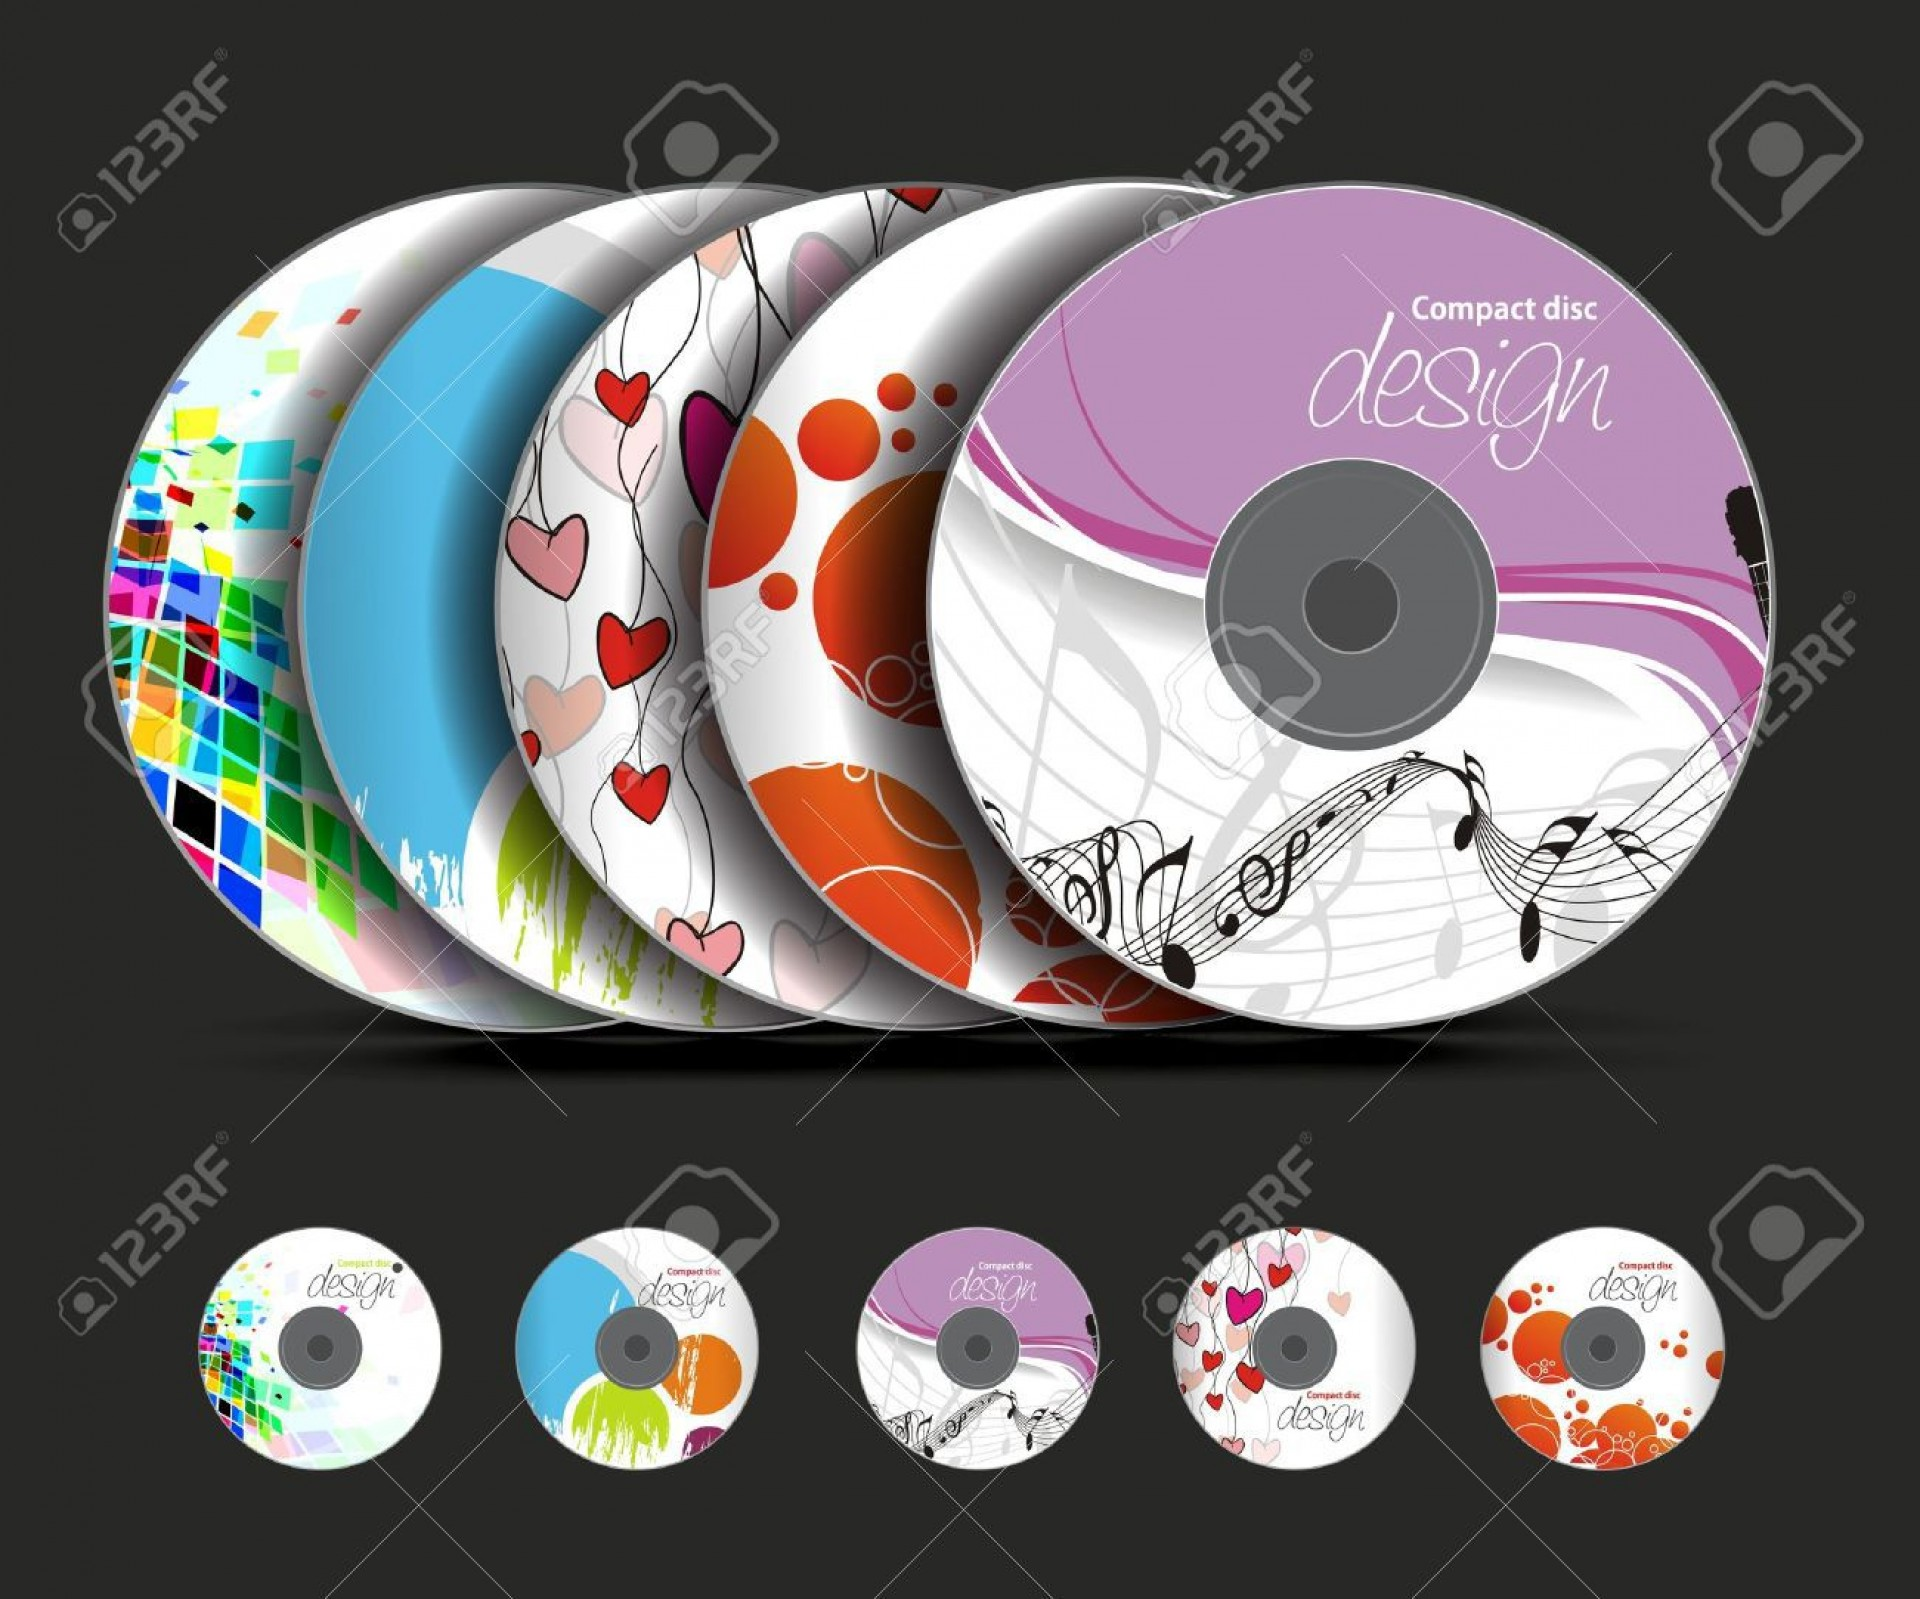 000 Fascinating Cd Design Template Free Image  Cover Download Word Label Wedding1920